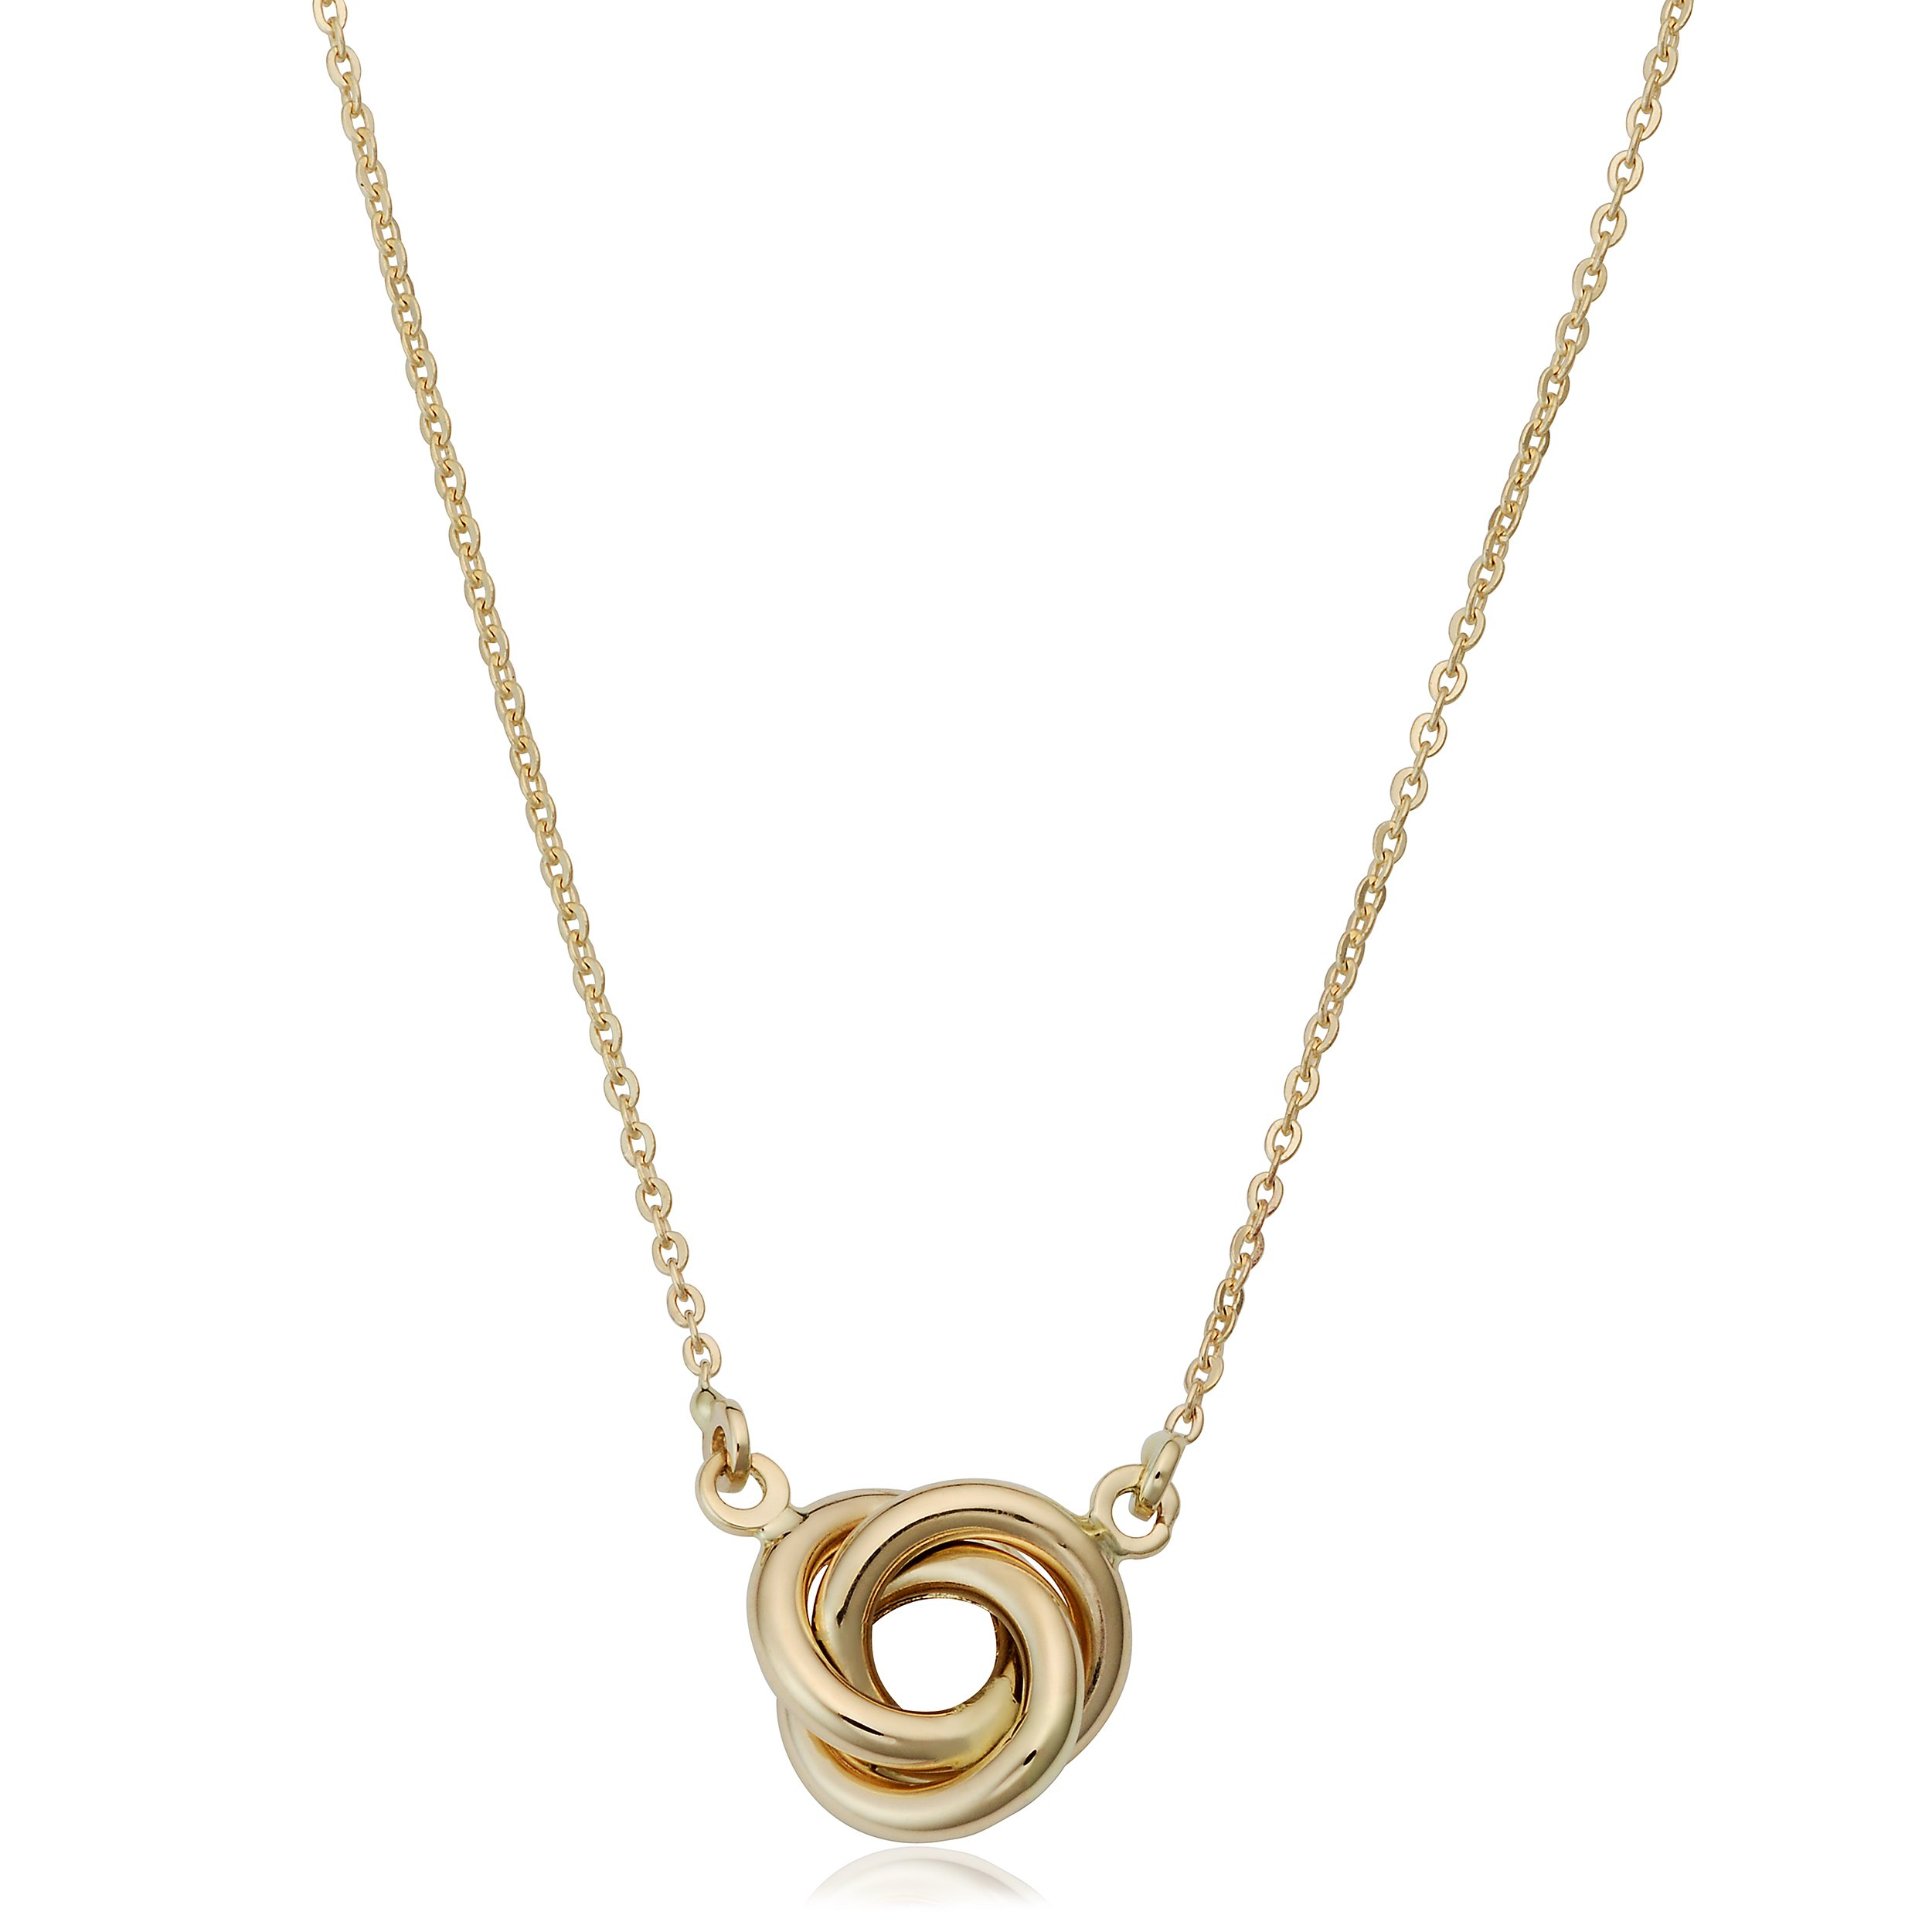 14k Yellow Gold 8mm High Polish Love Knot Necklace (18 inch)